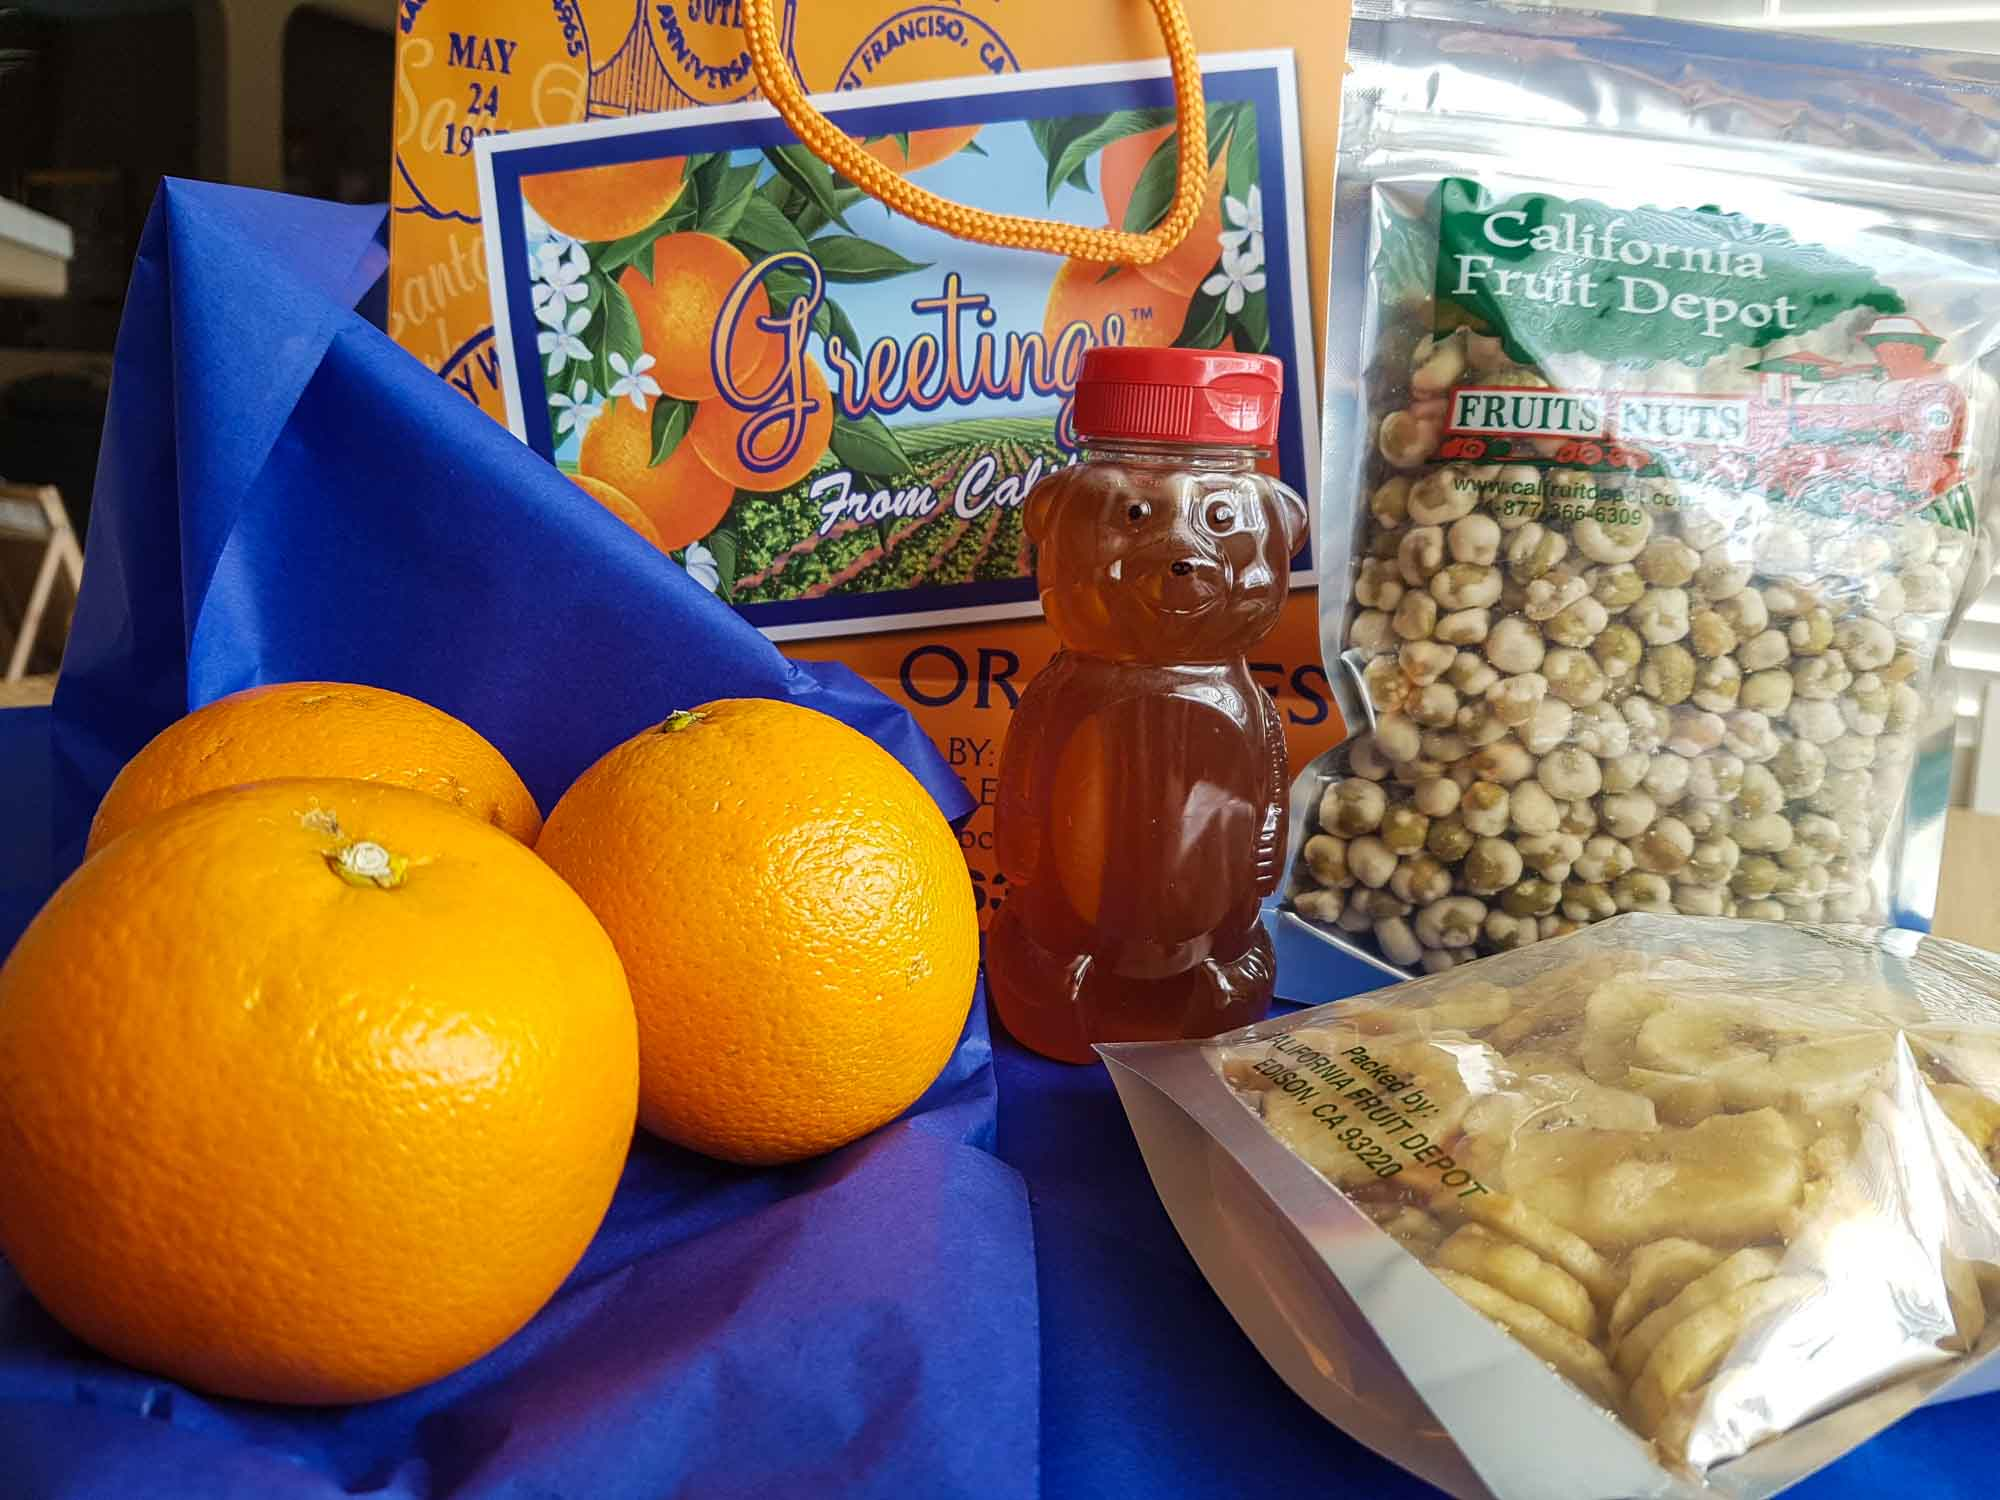 Oranges, honey and nuts from California Fruit Depot in Bakersfield, California